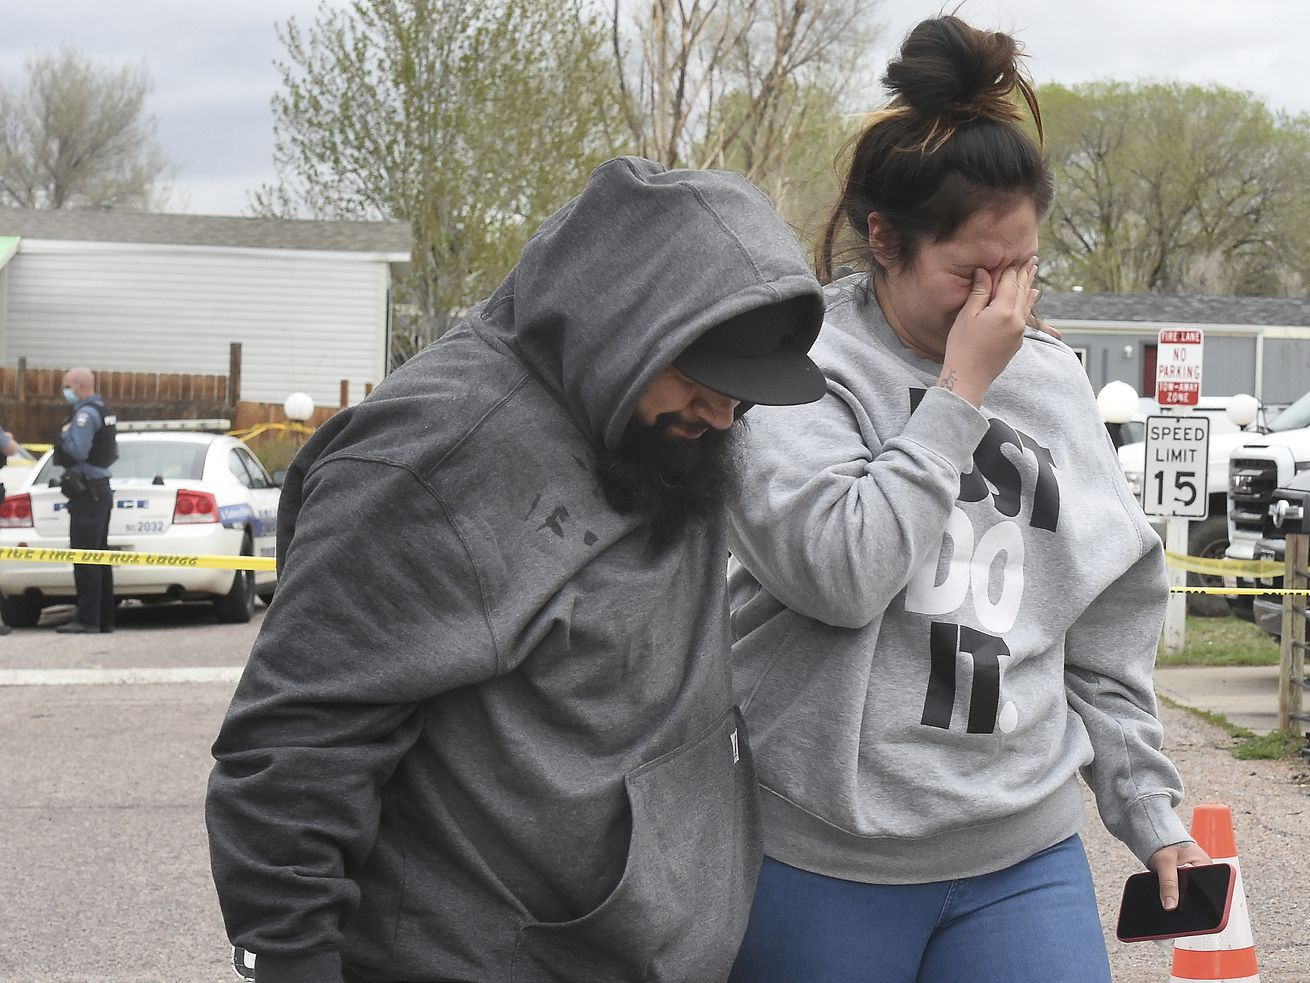 Freddy Marquez and his wife, Nubia Marquez, near the scene where her mother and other family members were killed in a mass shooting early Sunday, May 9, 2021, in Colorado Springs, Colo.